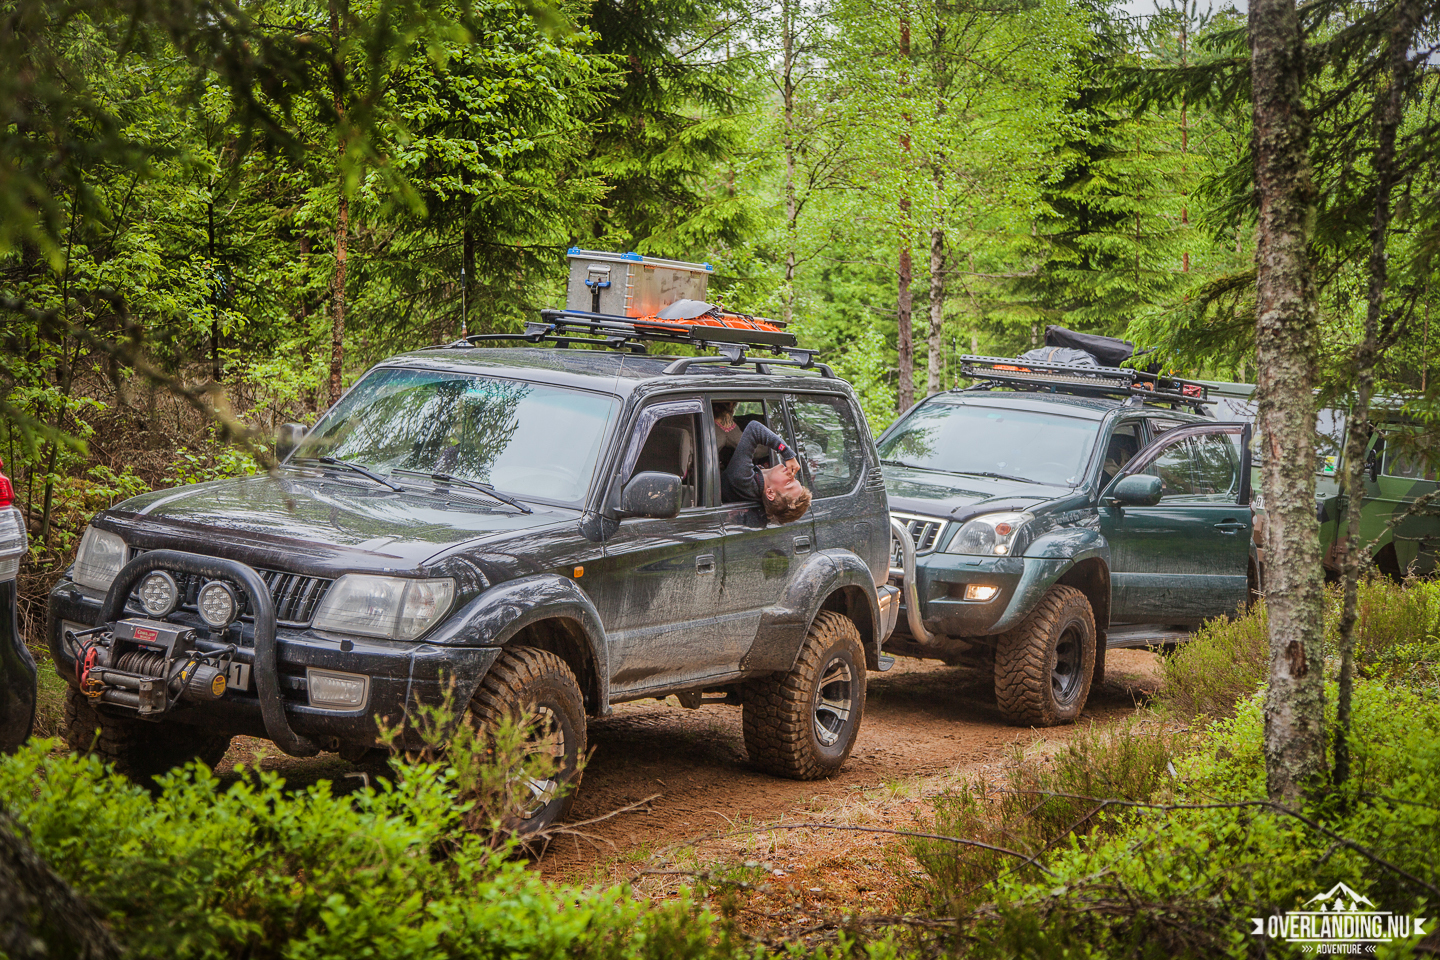 Photo of Overlanding.nu´s Vårträff 2017